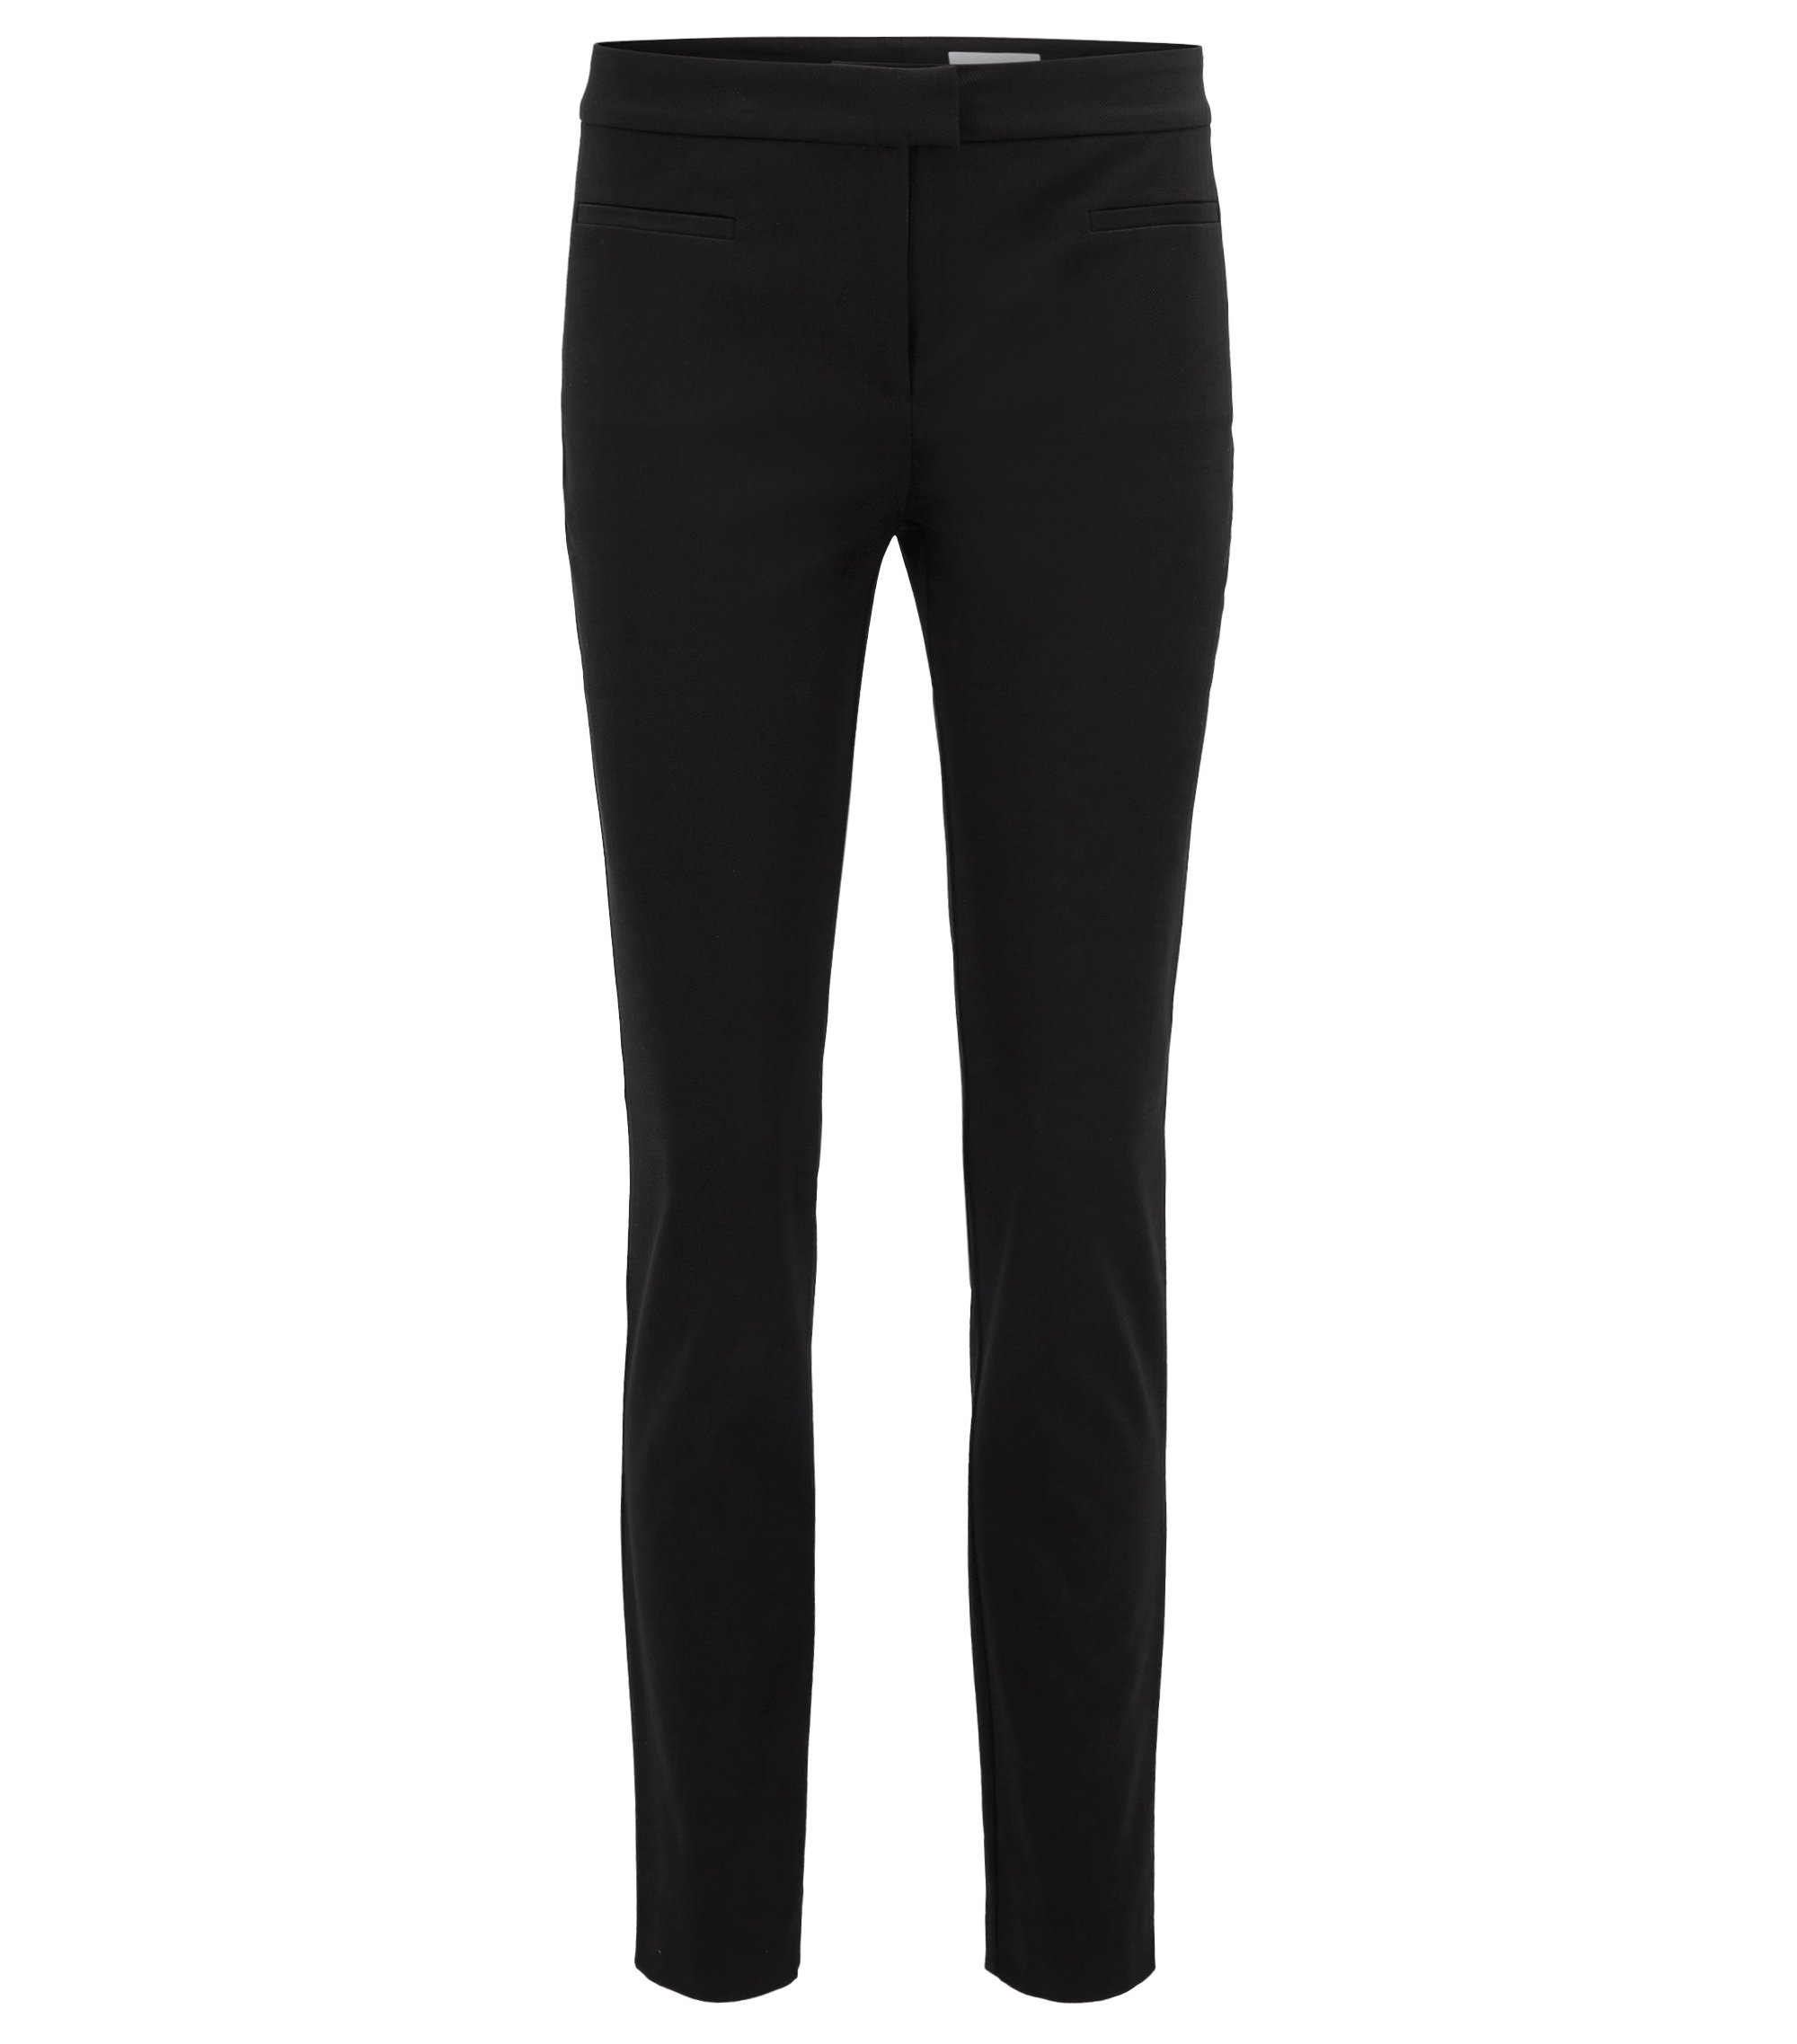 Slim-Fit Hose aus Stretch-Baumwolle in Cropped-Länge, Schwarz